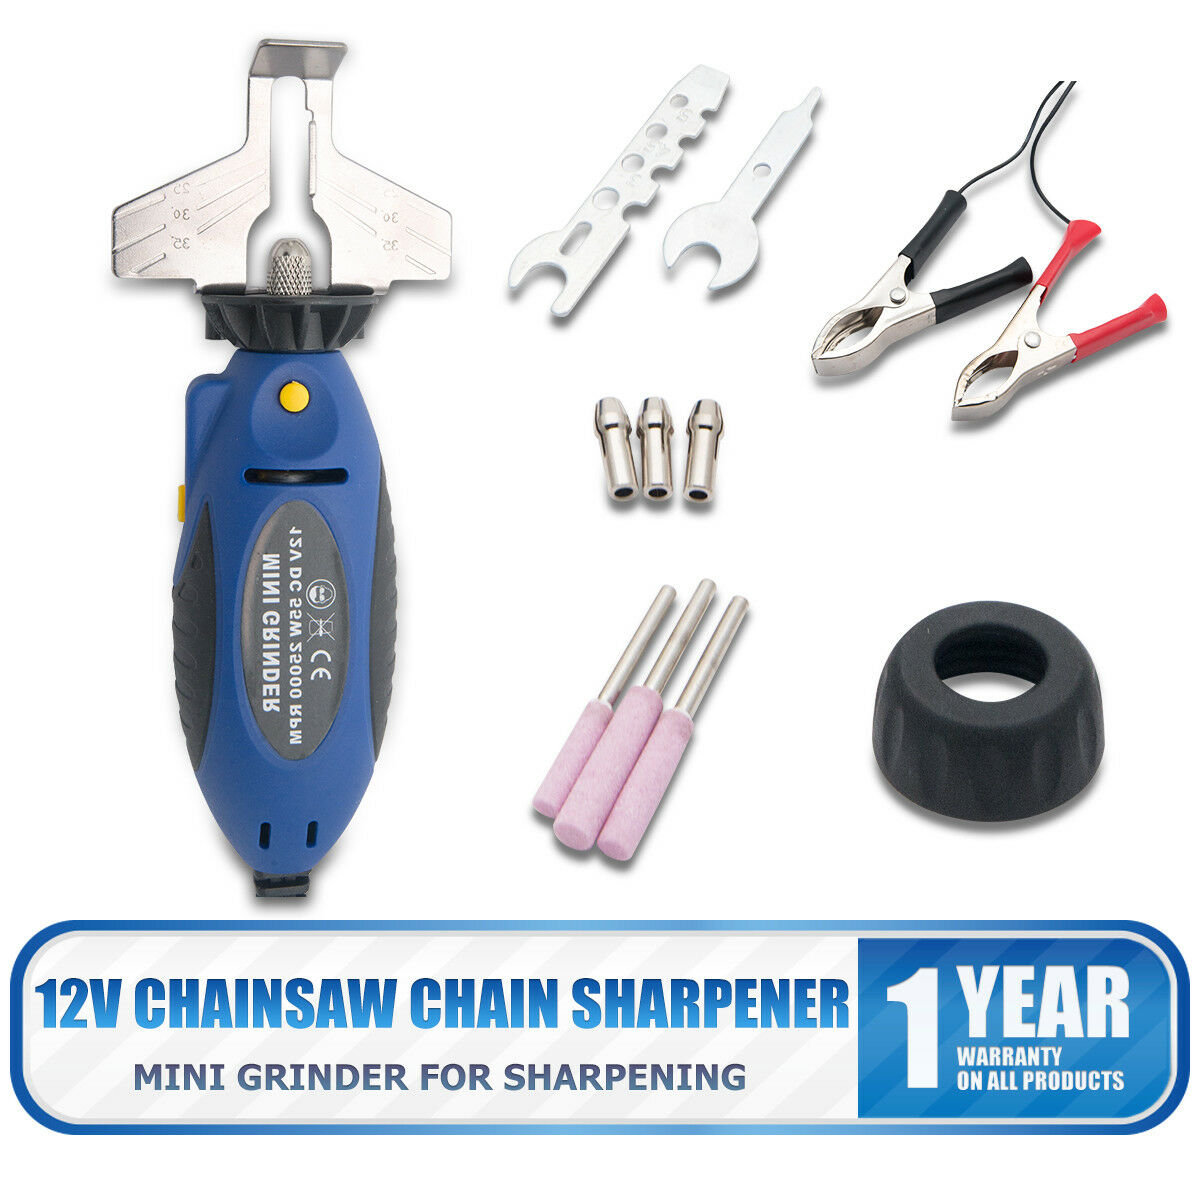 Terrific 12V Chainsaw Sharpener Chain Saw Grinder Electric Grinder File Sharpening Tool Bralicious Painted Fabric Chair Ideas Braliciousco